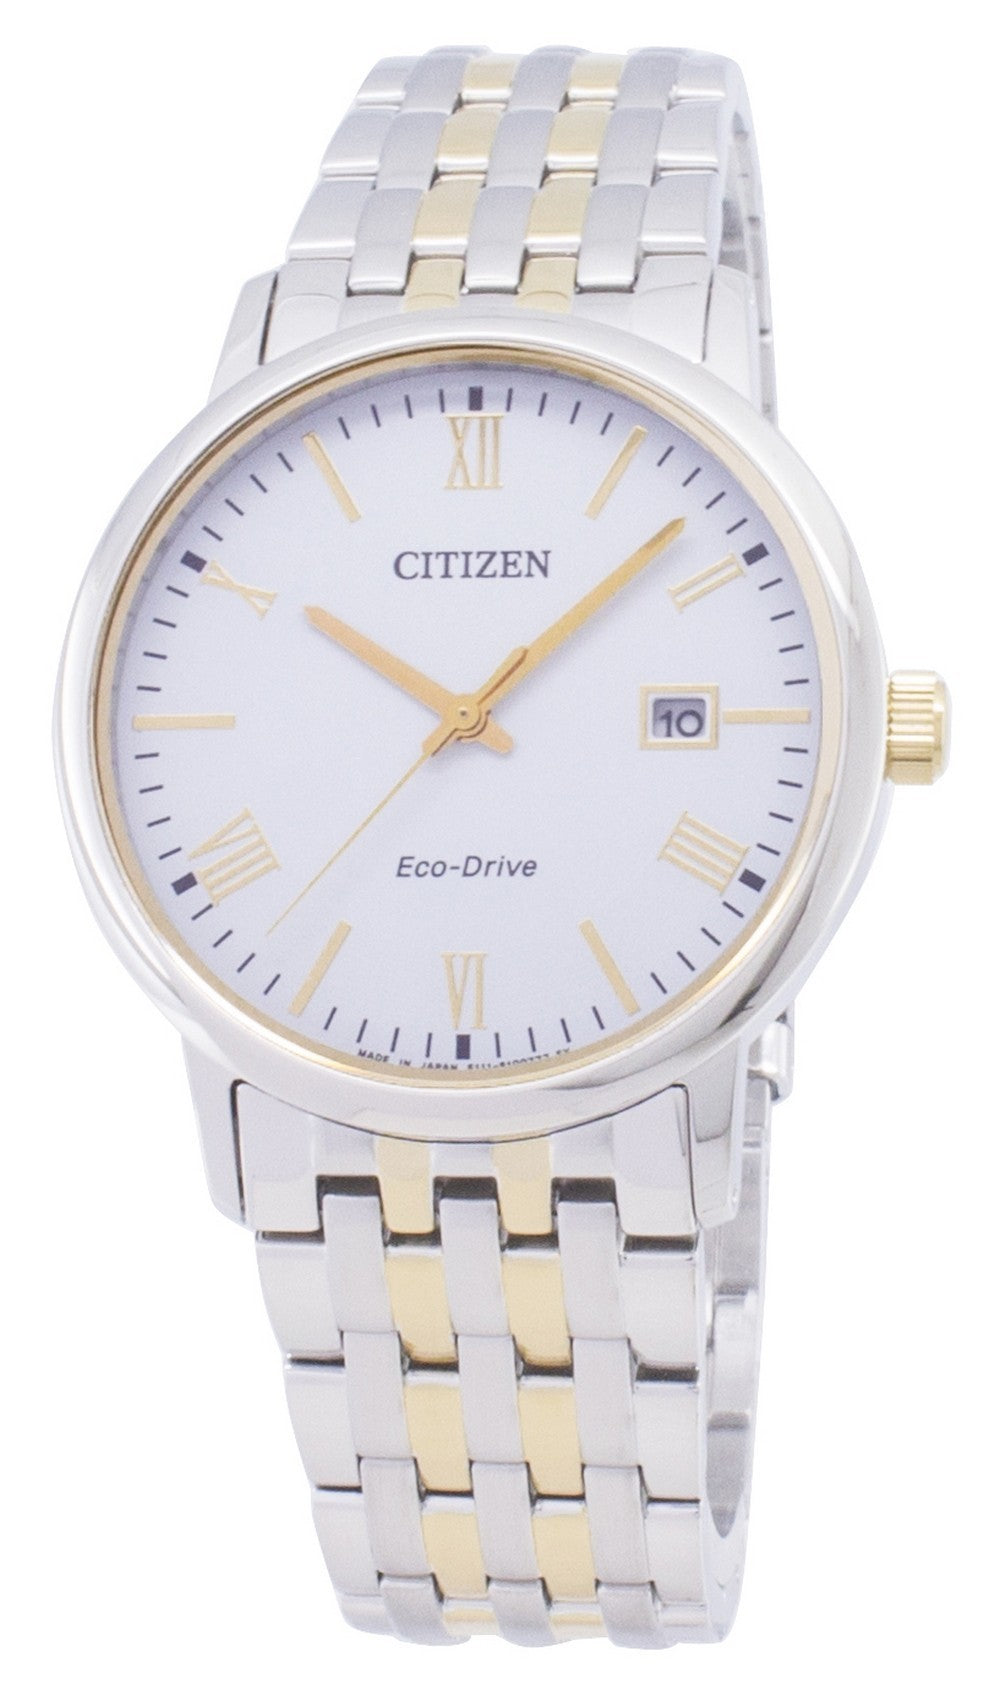 Citizen Eco-drive Bm6774-51a Analog Japan Made Men's Watch